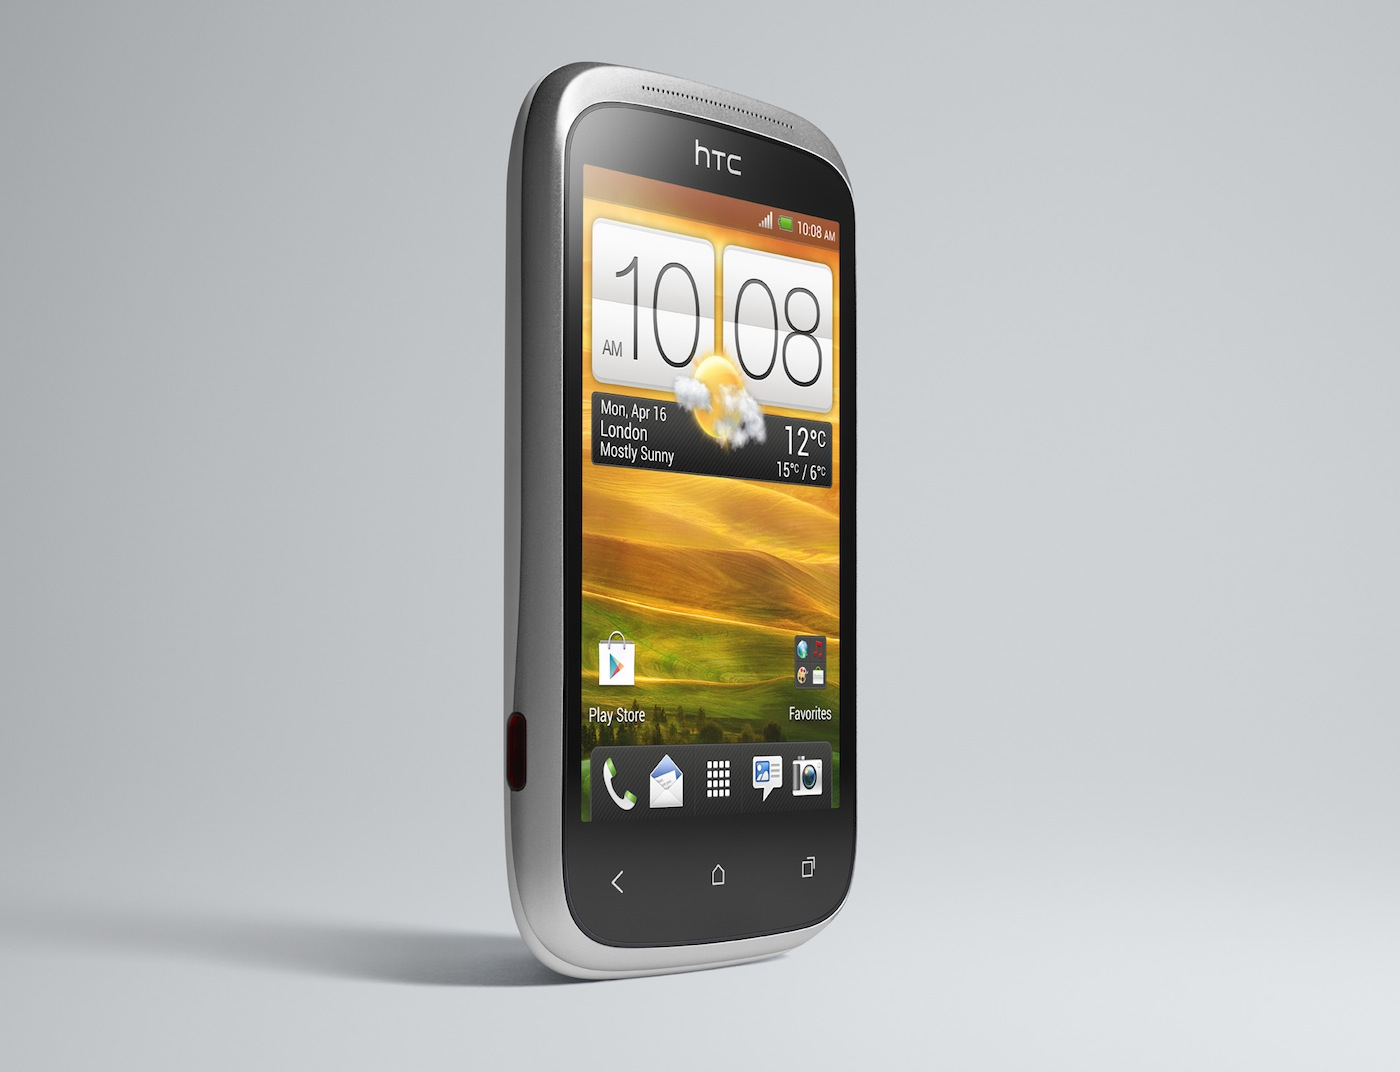 htc desire specification